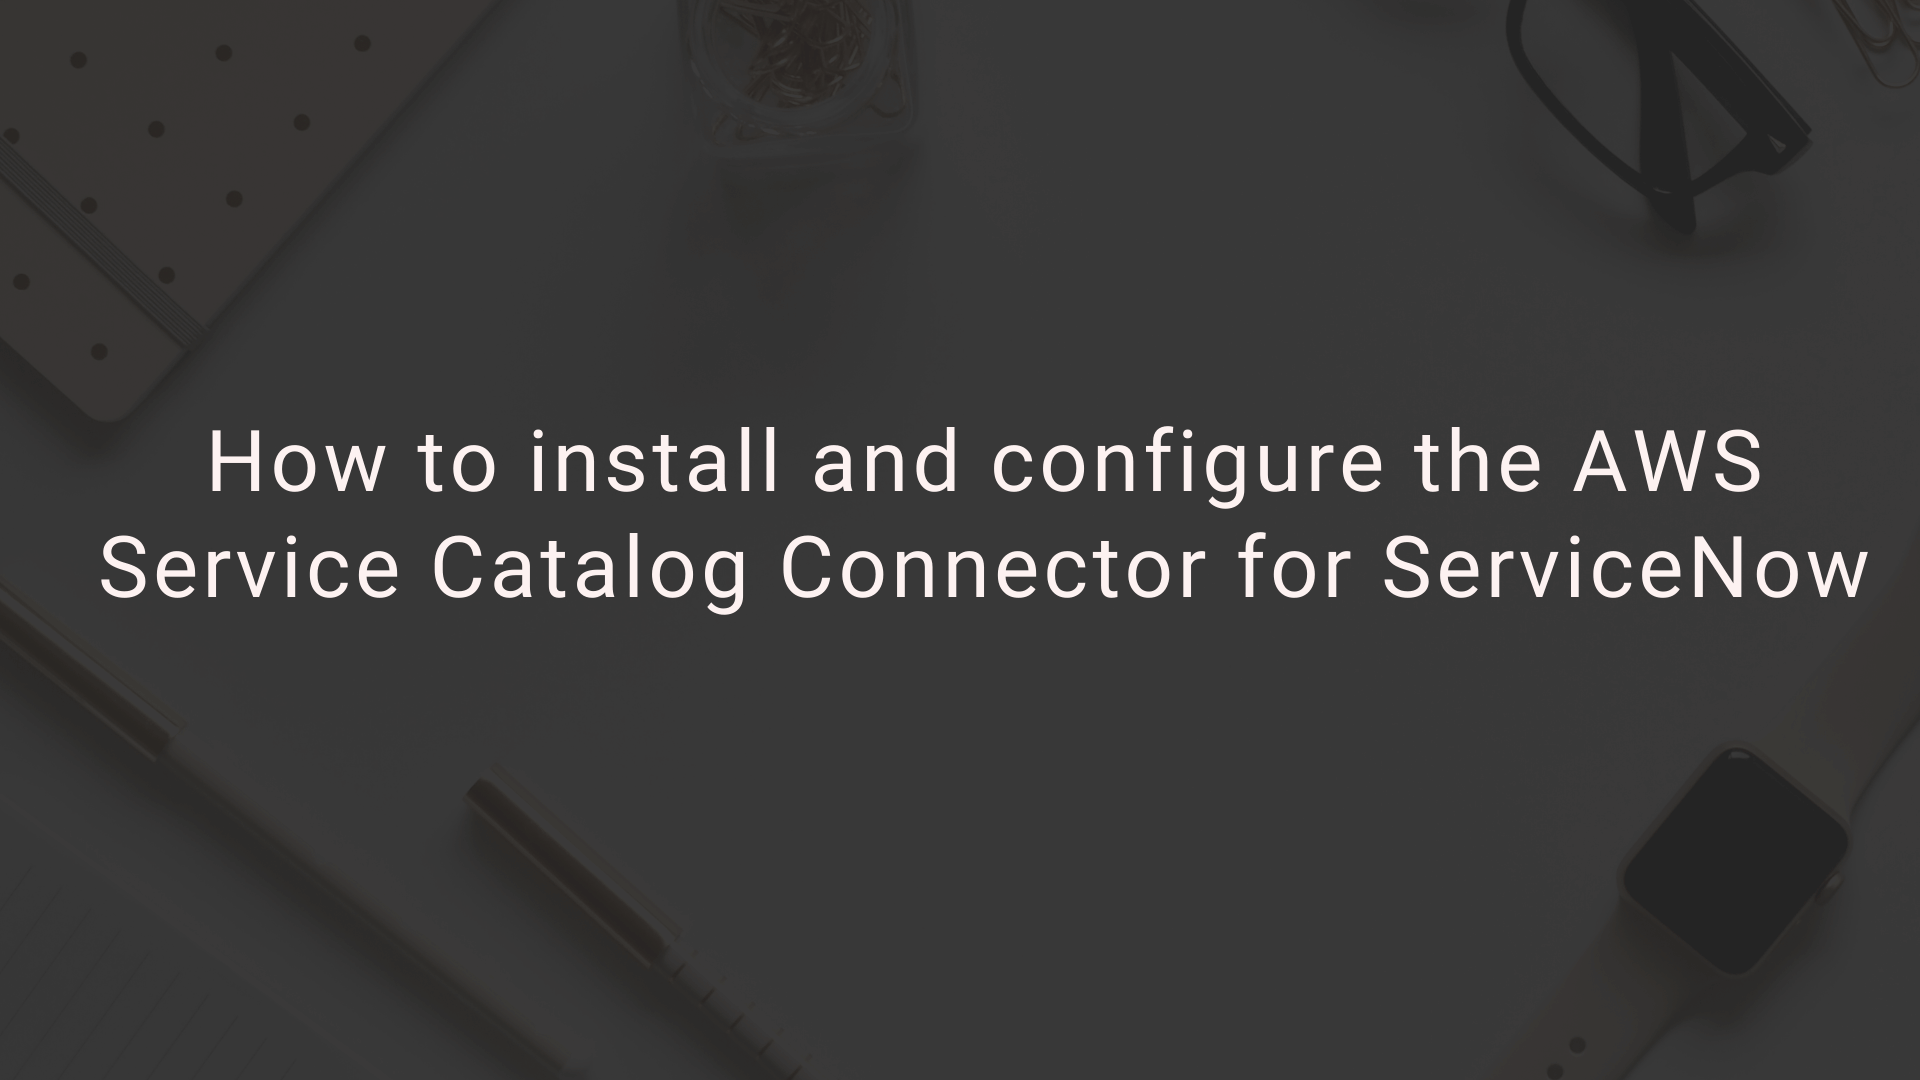 How to install and configure the AWS Service Catalog Connector for ServiceNow